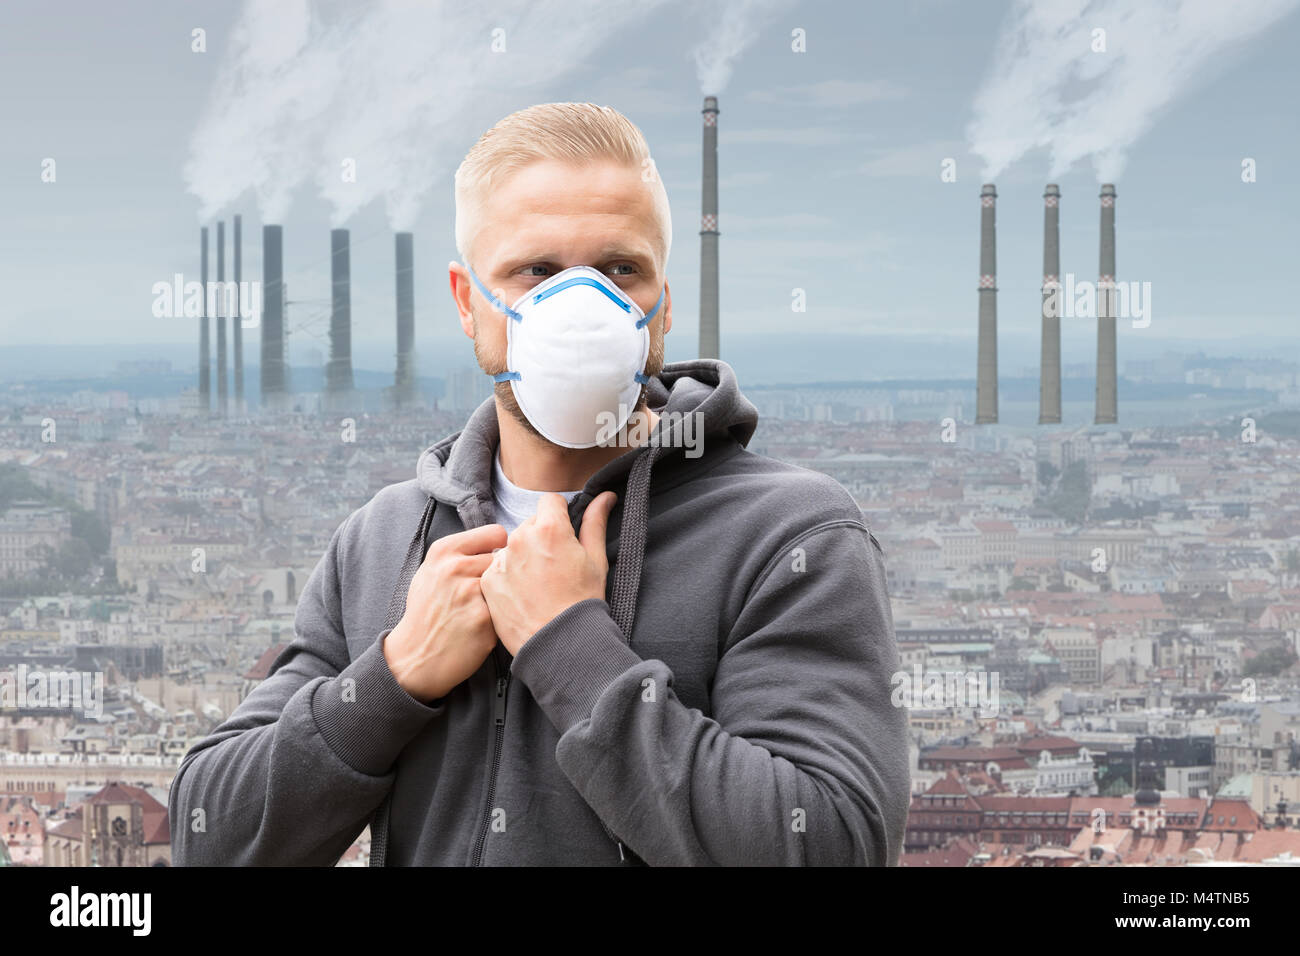 A Man Wearing Pollution Mask Against Smoke Emitting From Factory Chimneys - Stock Image